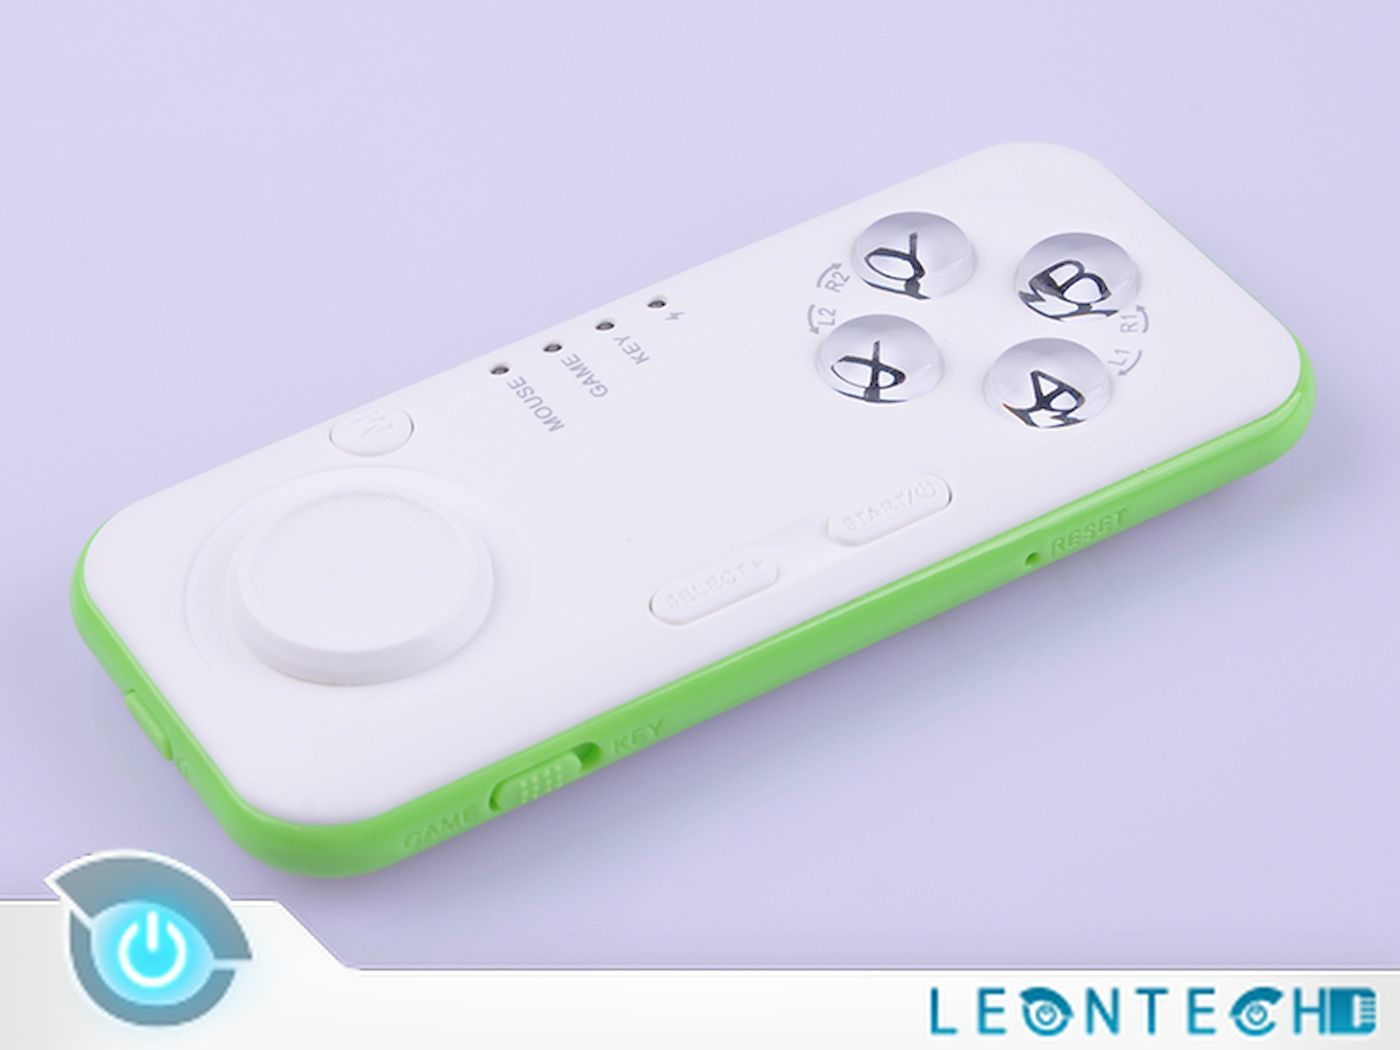 Original-Brand-MOCUTE-Joystick-multifunction-Bluetooth-Selfie-Remote-Control-Shutter-Gamepad-for-IOS-Andriod-PC-Smart_result.jpg